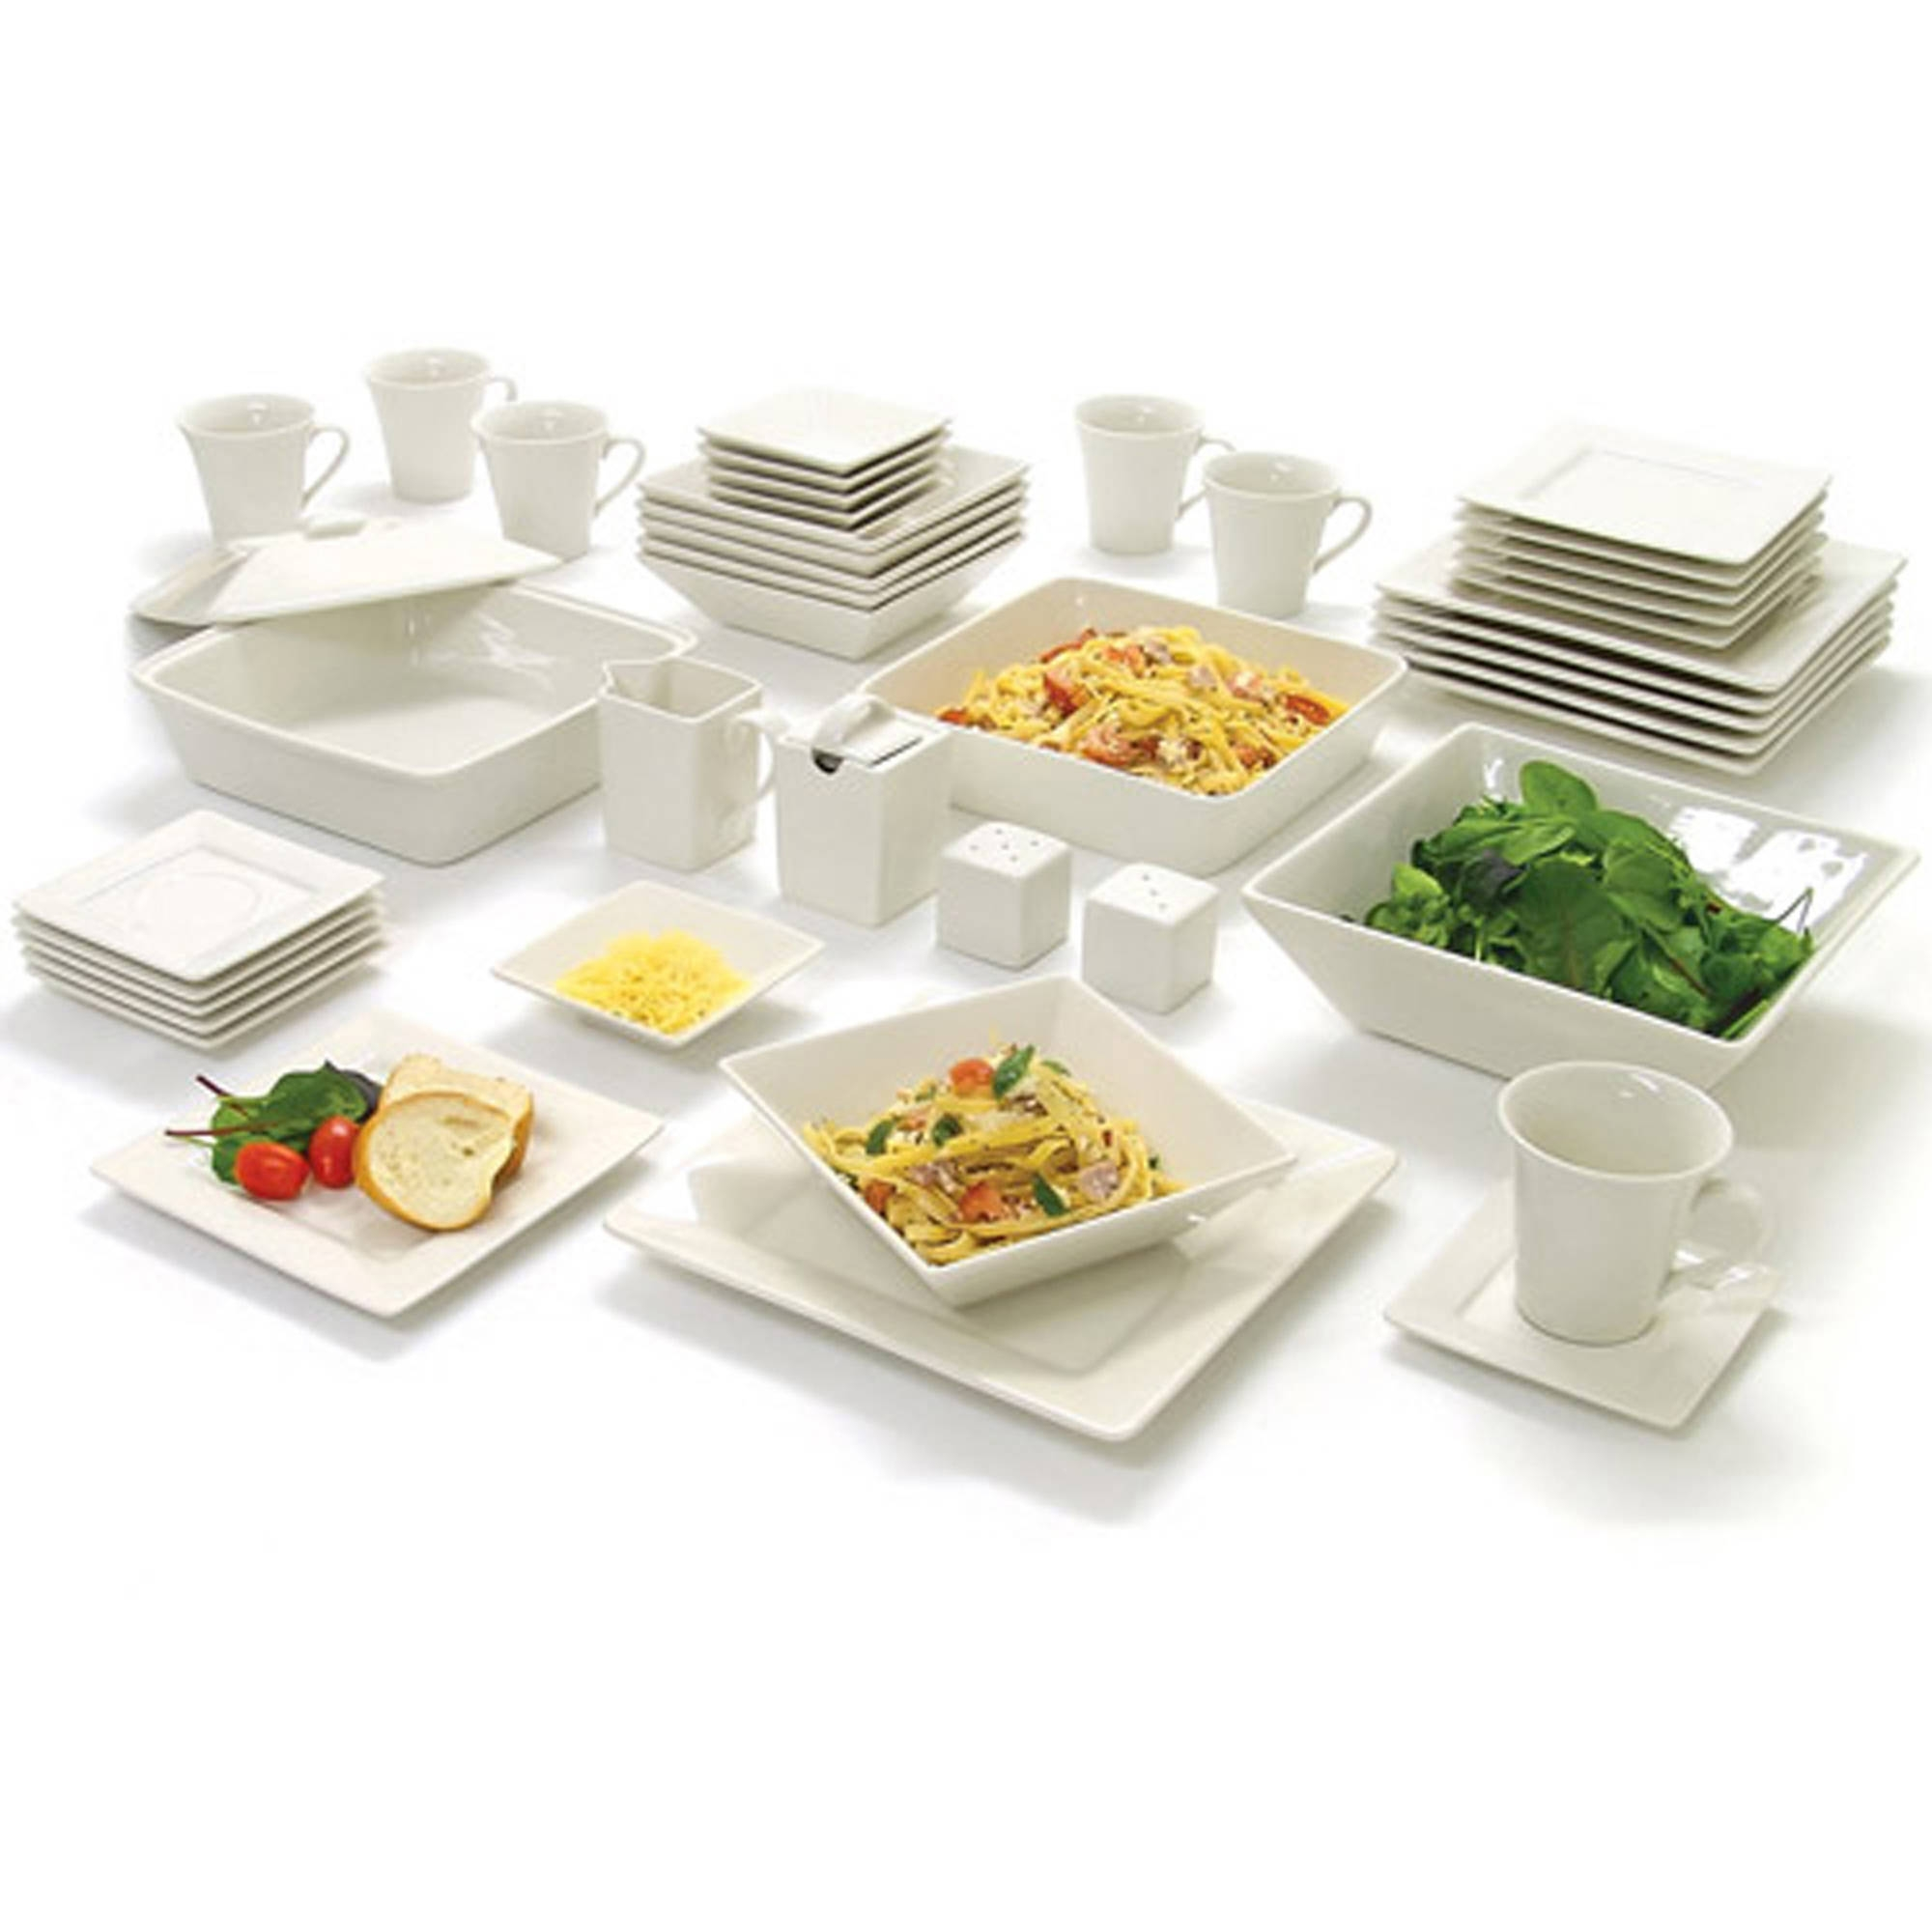 Kitchen Plate And Bowl Sets